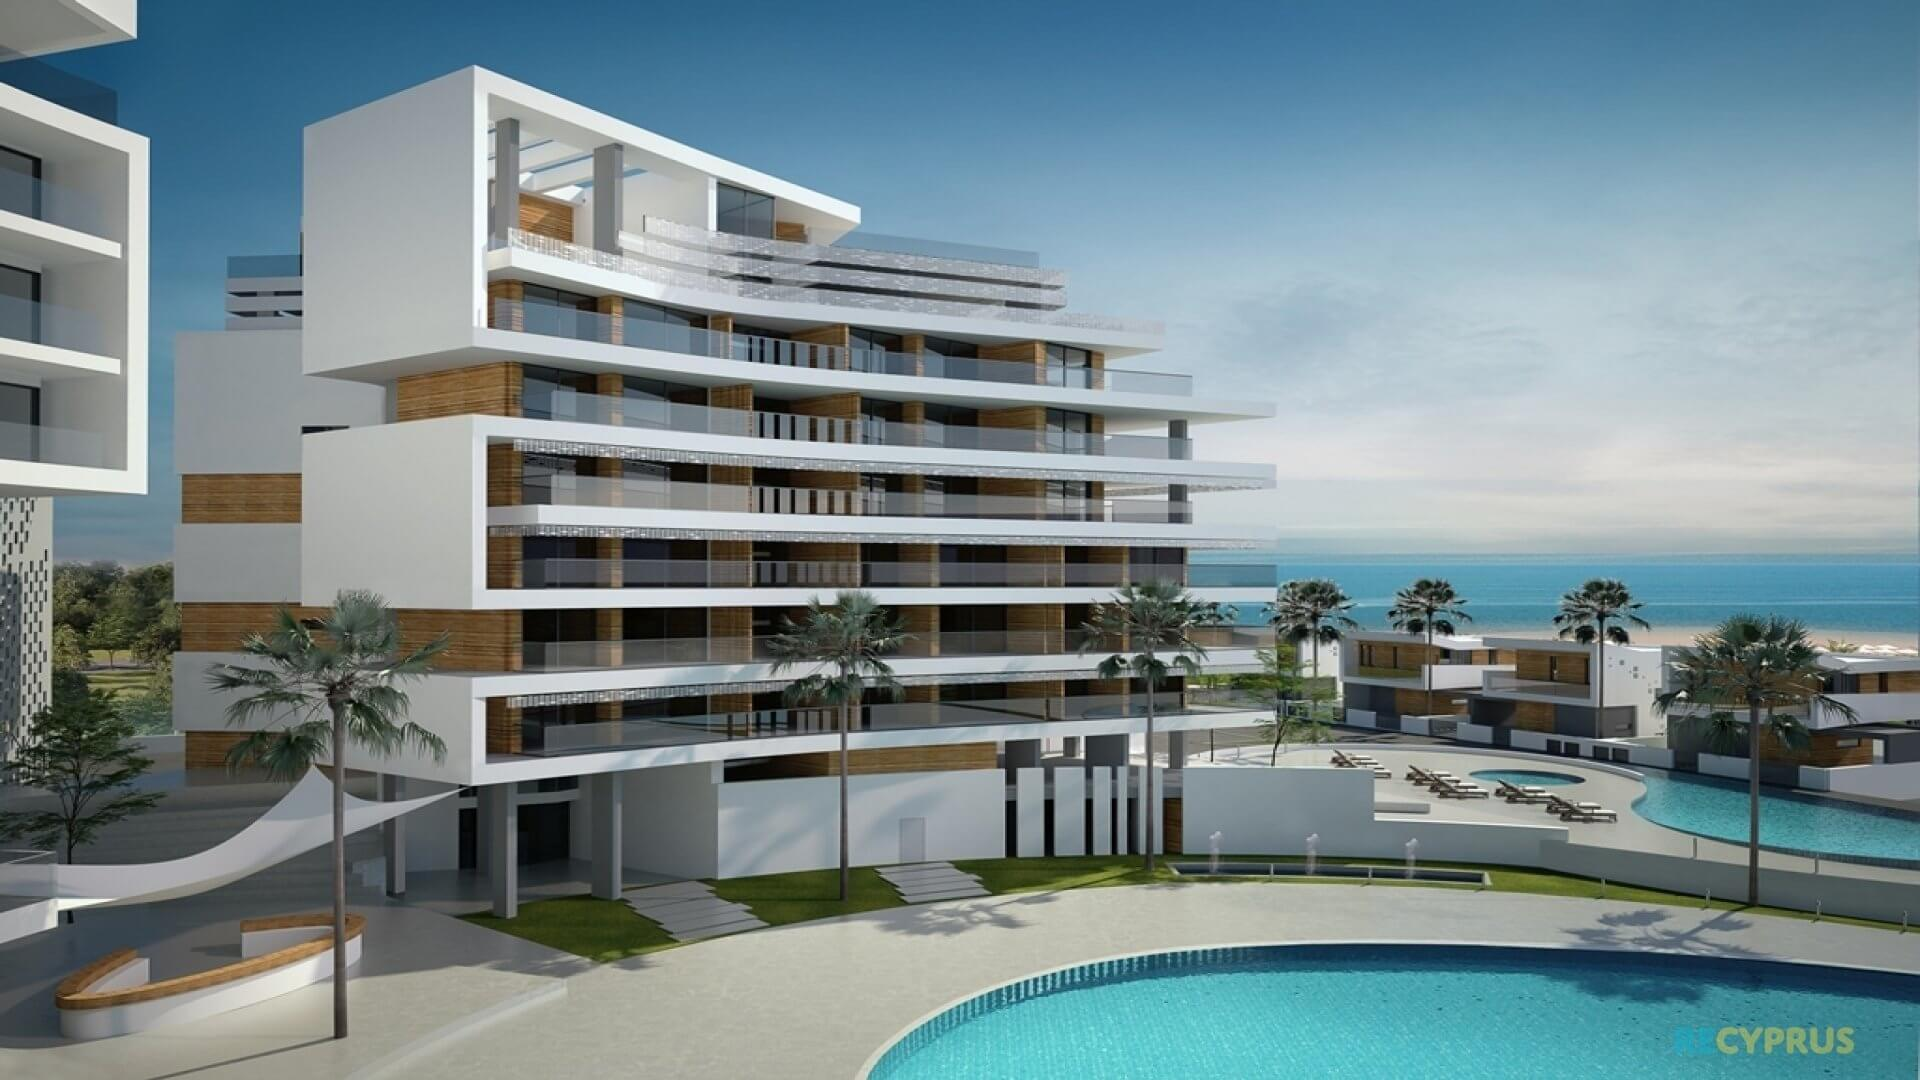 Apartment for sale Ayia Thekla Famagusta Cyprus 1 3512